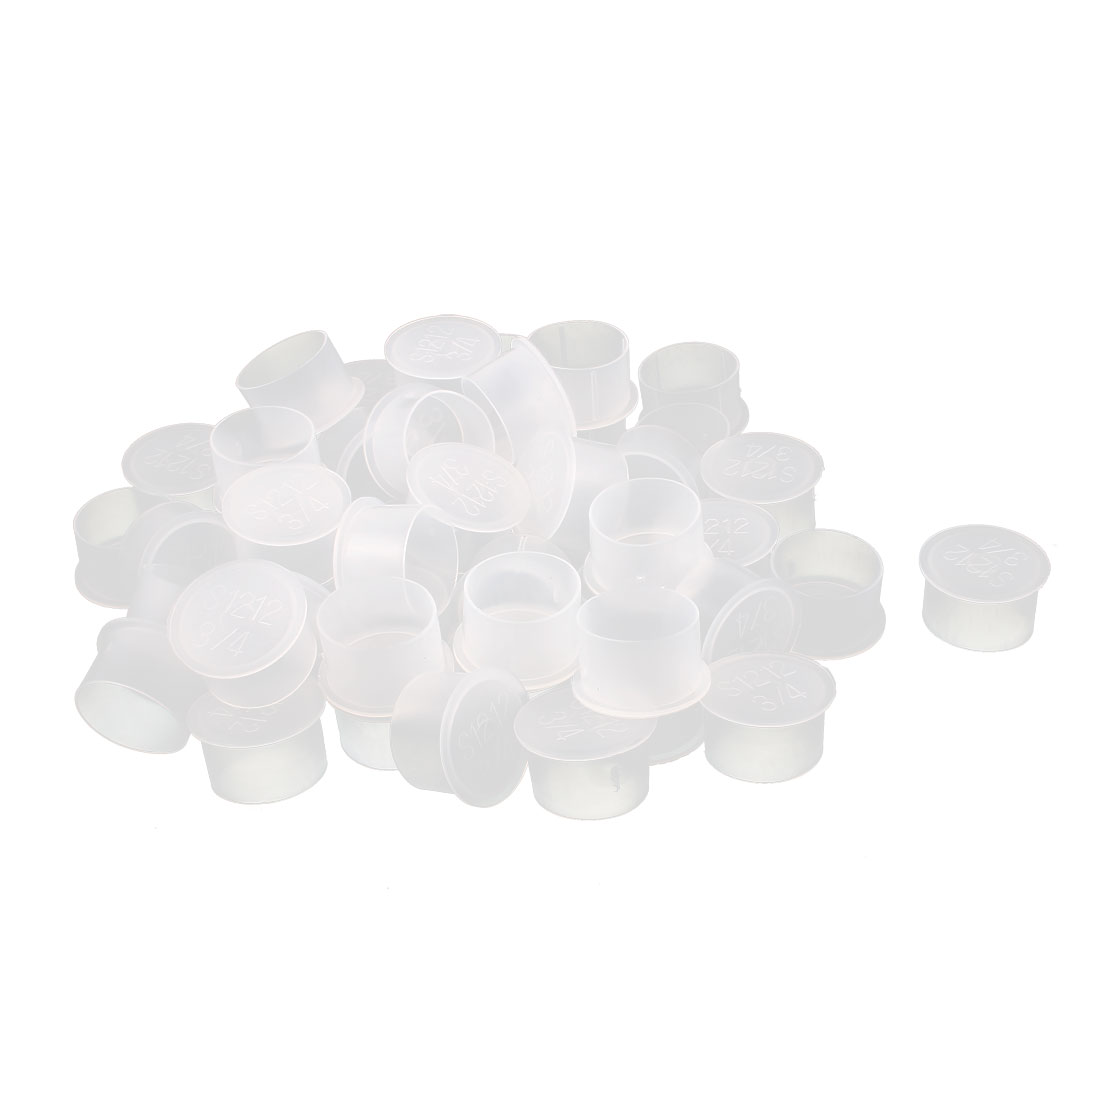 50Pcs 26mm Inner Dia PVC Insulated End Cap Wire Cable Tube Cover Protector